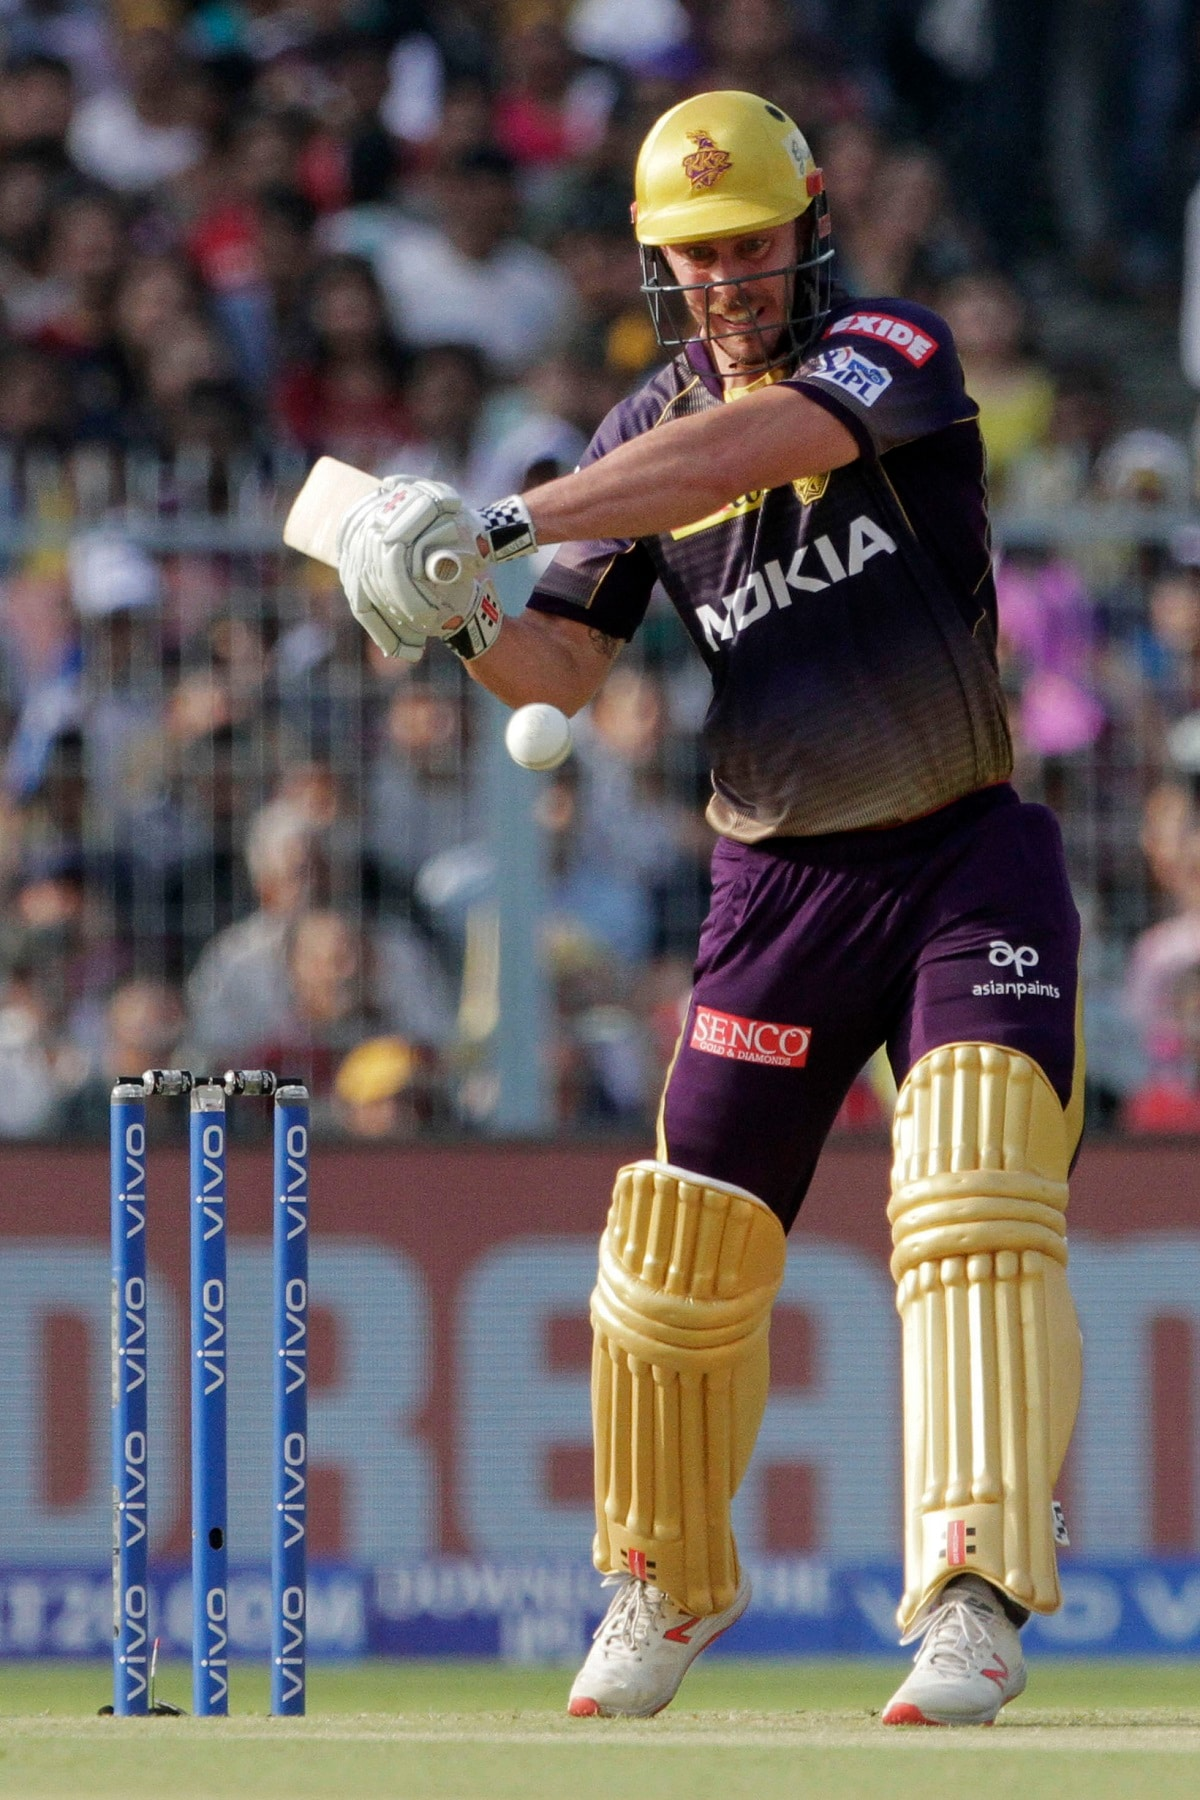 Kolkata Knight Riders' Chris Lynn plays a ball during the VIVO IPL cricket T20 match against Chennai Super Kings in Kolkata. (AP Photo/Bikas Das)